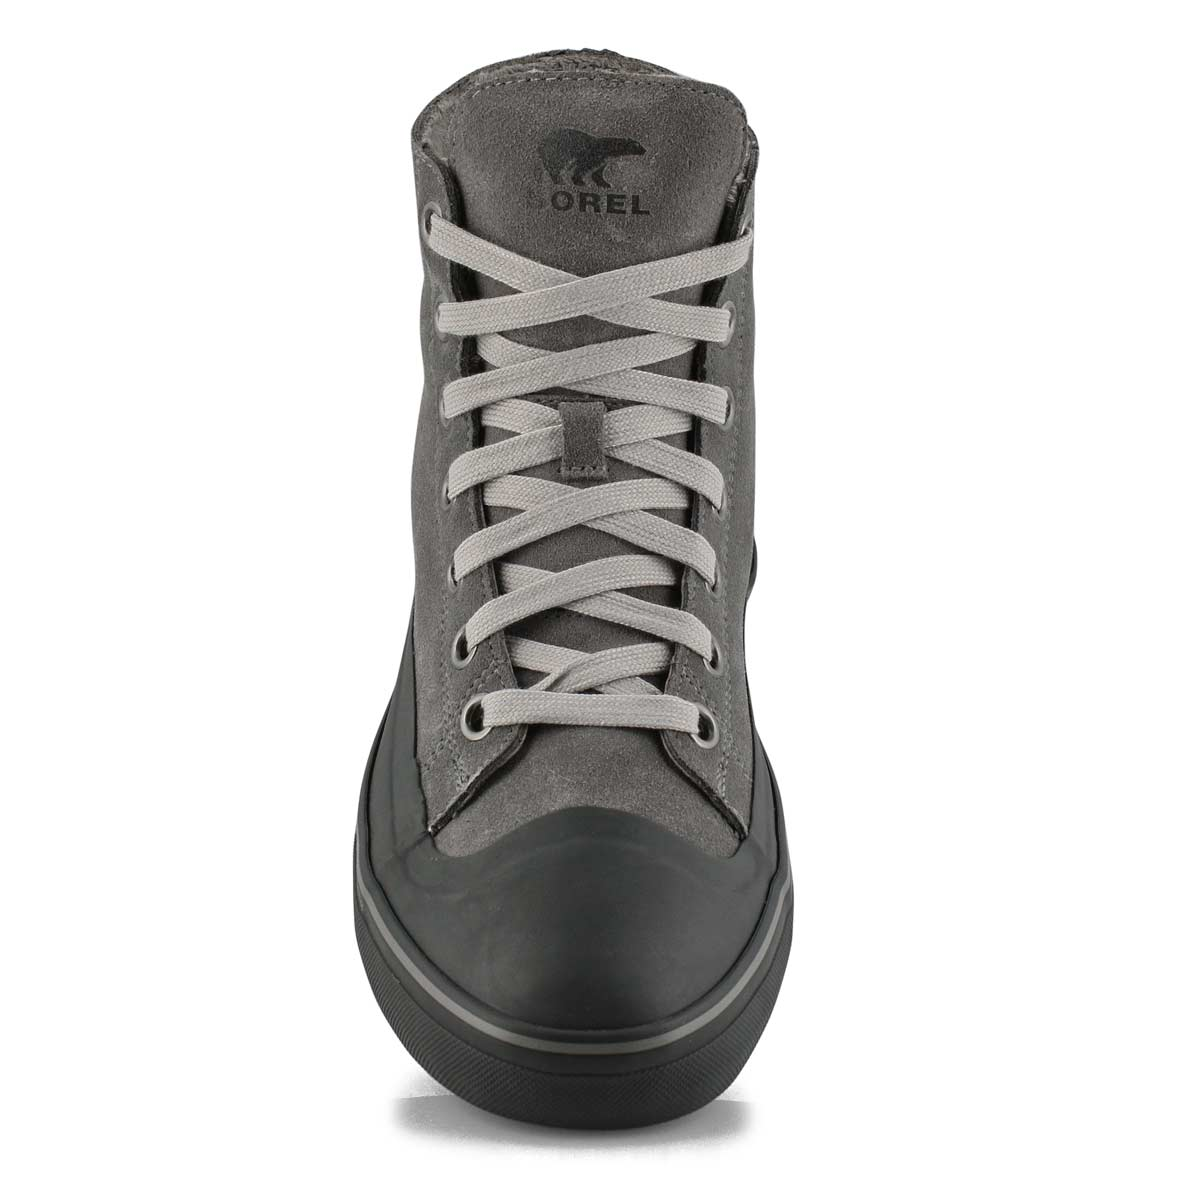 Men's Cheyanne Metro HI Waterproof Boot - Quarry